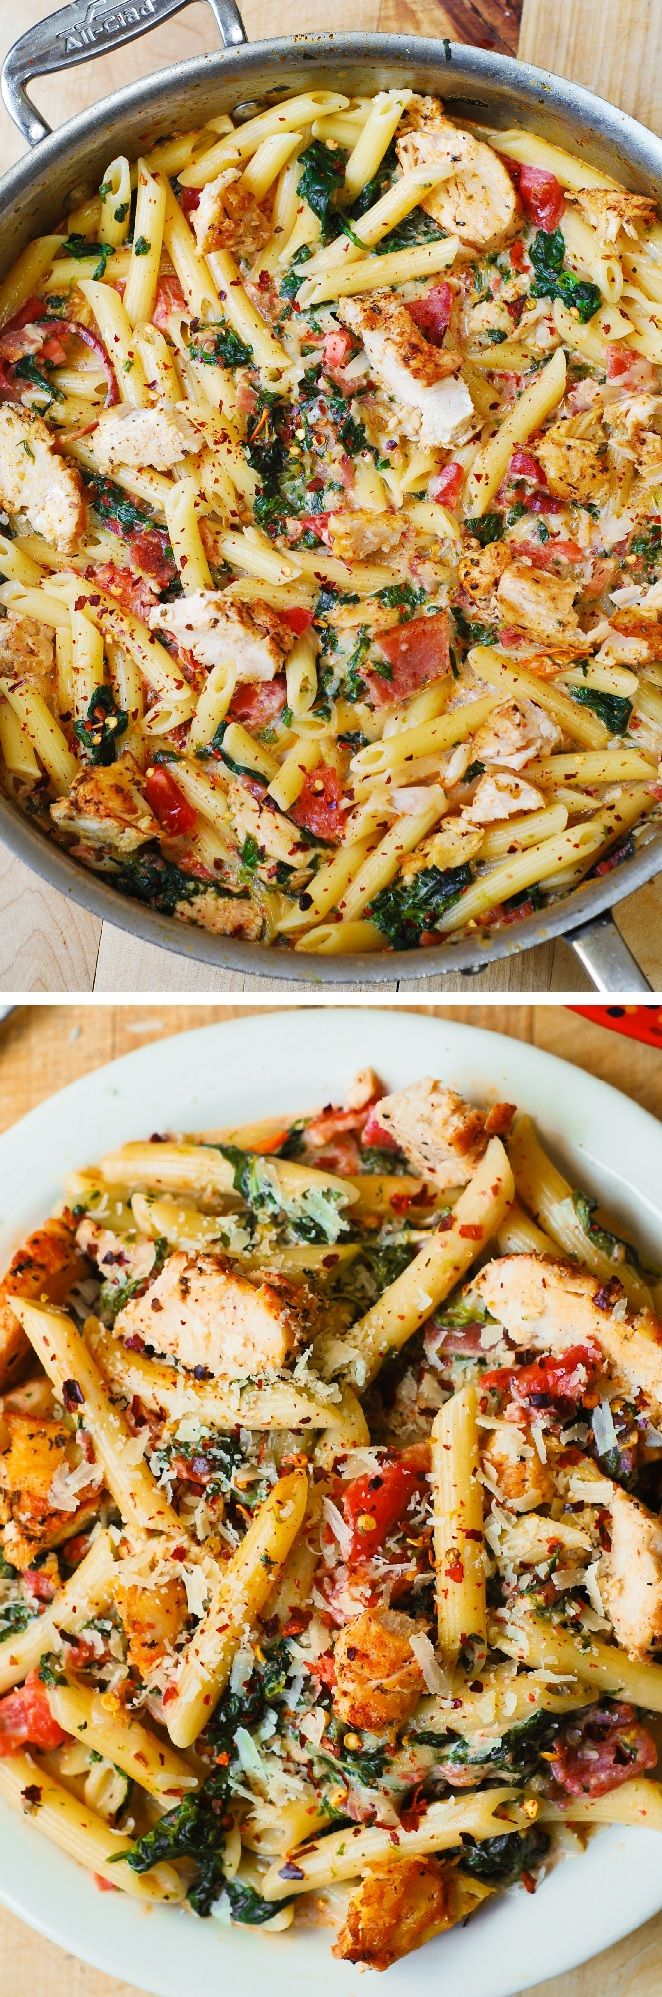 Chicken and Bacon Pasta with Spinach and Tomatoes in Garlic Cream Sauce - Delicious creamy sauce perfectly blends together all the flavors: bacon, garlic, spices, tomatoes.